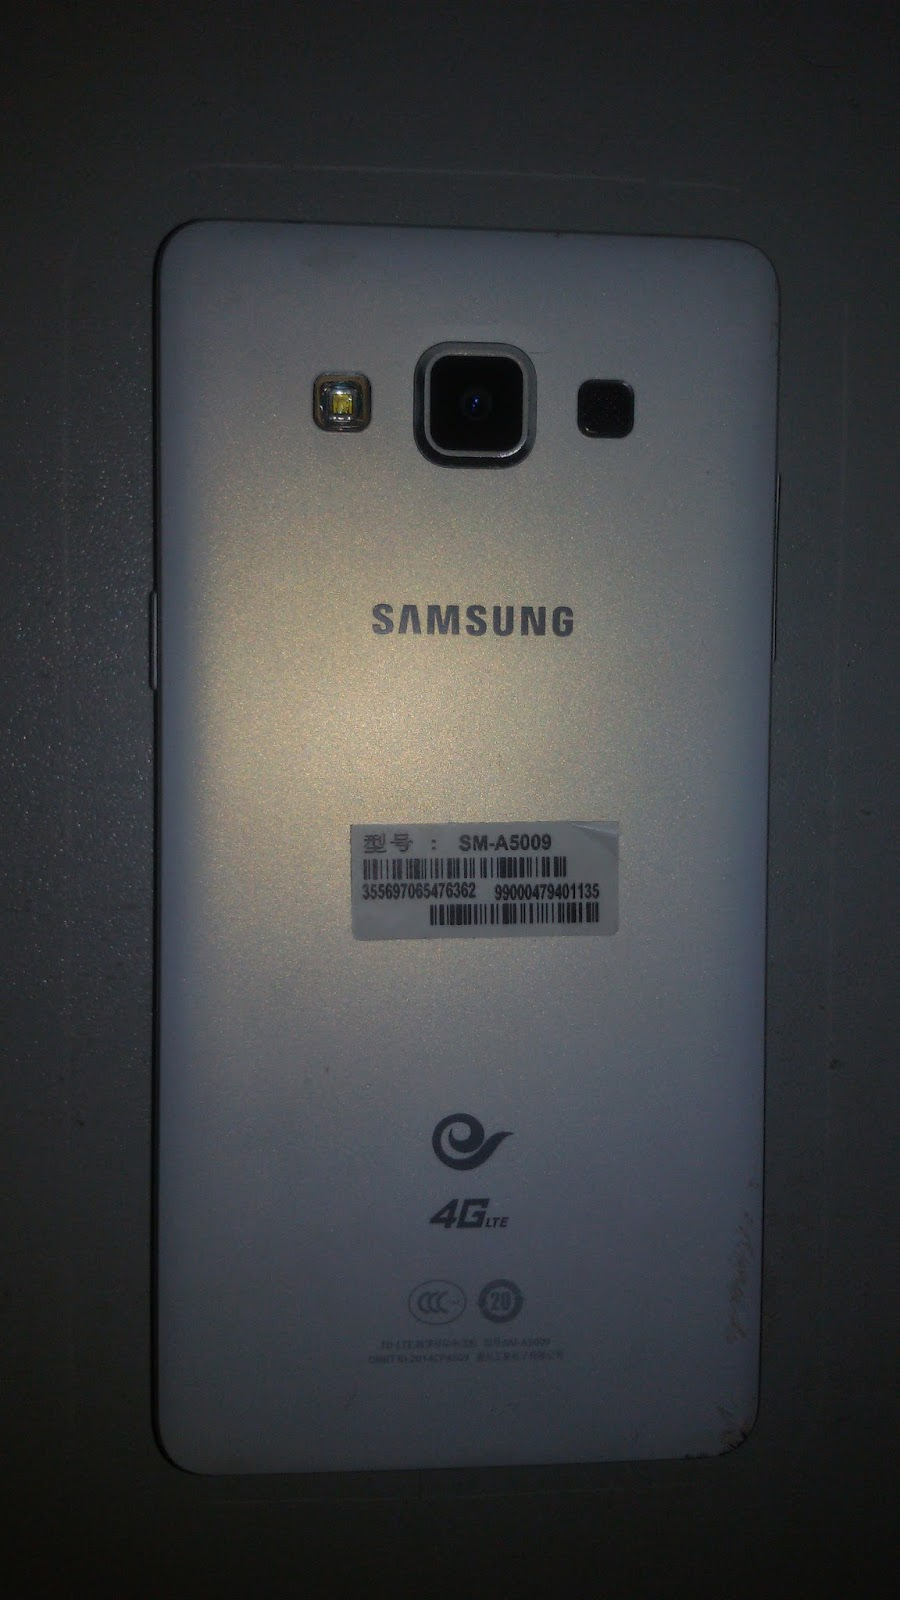 SAMSUNG PHONE A-5009, Orginal, brand new, hot selling in Nigeria, US450, Free shipping - teetotal - jacuzzi-bathtub.com